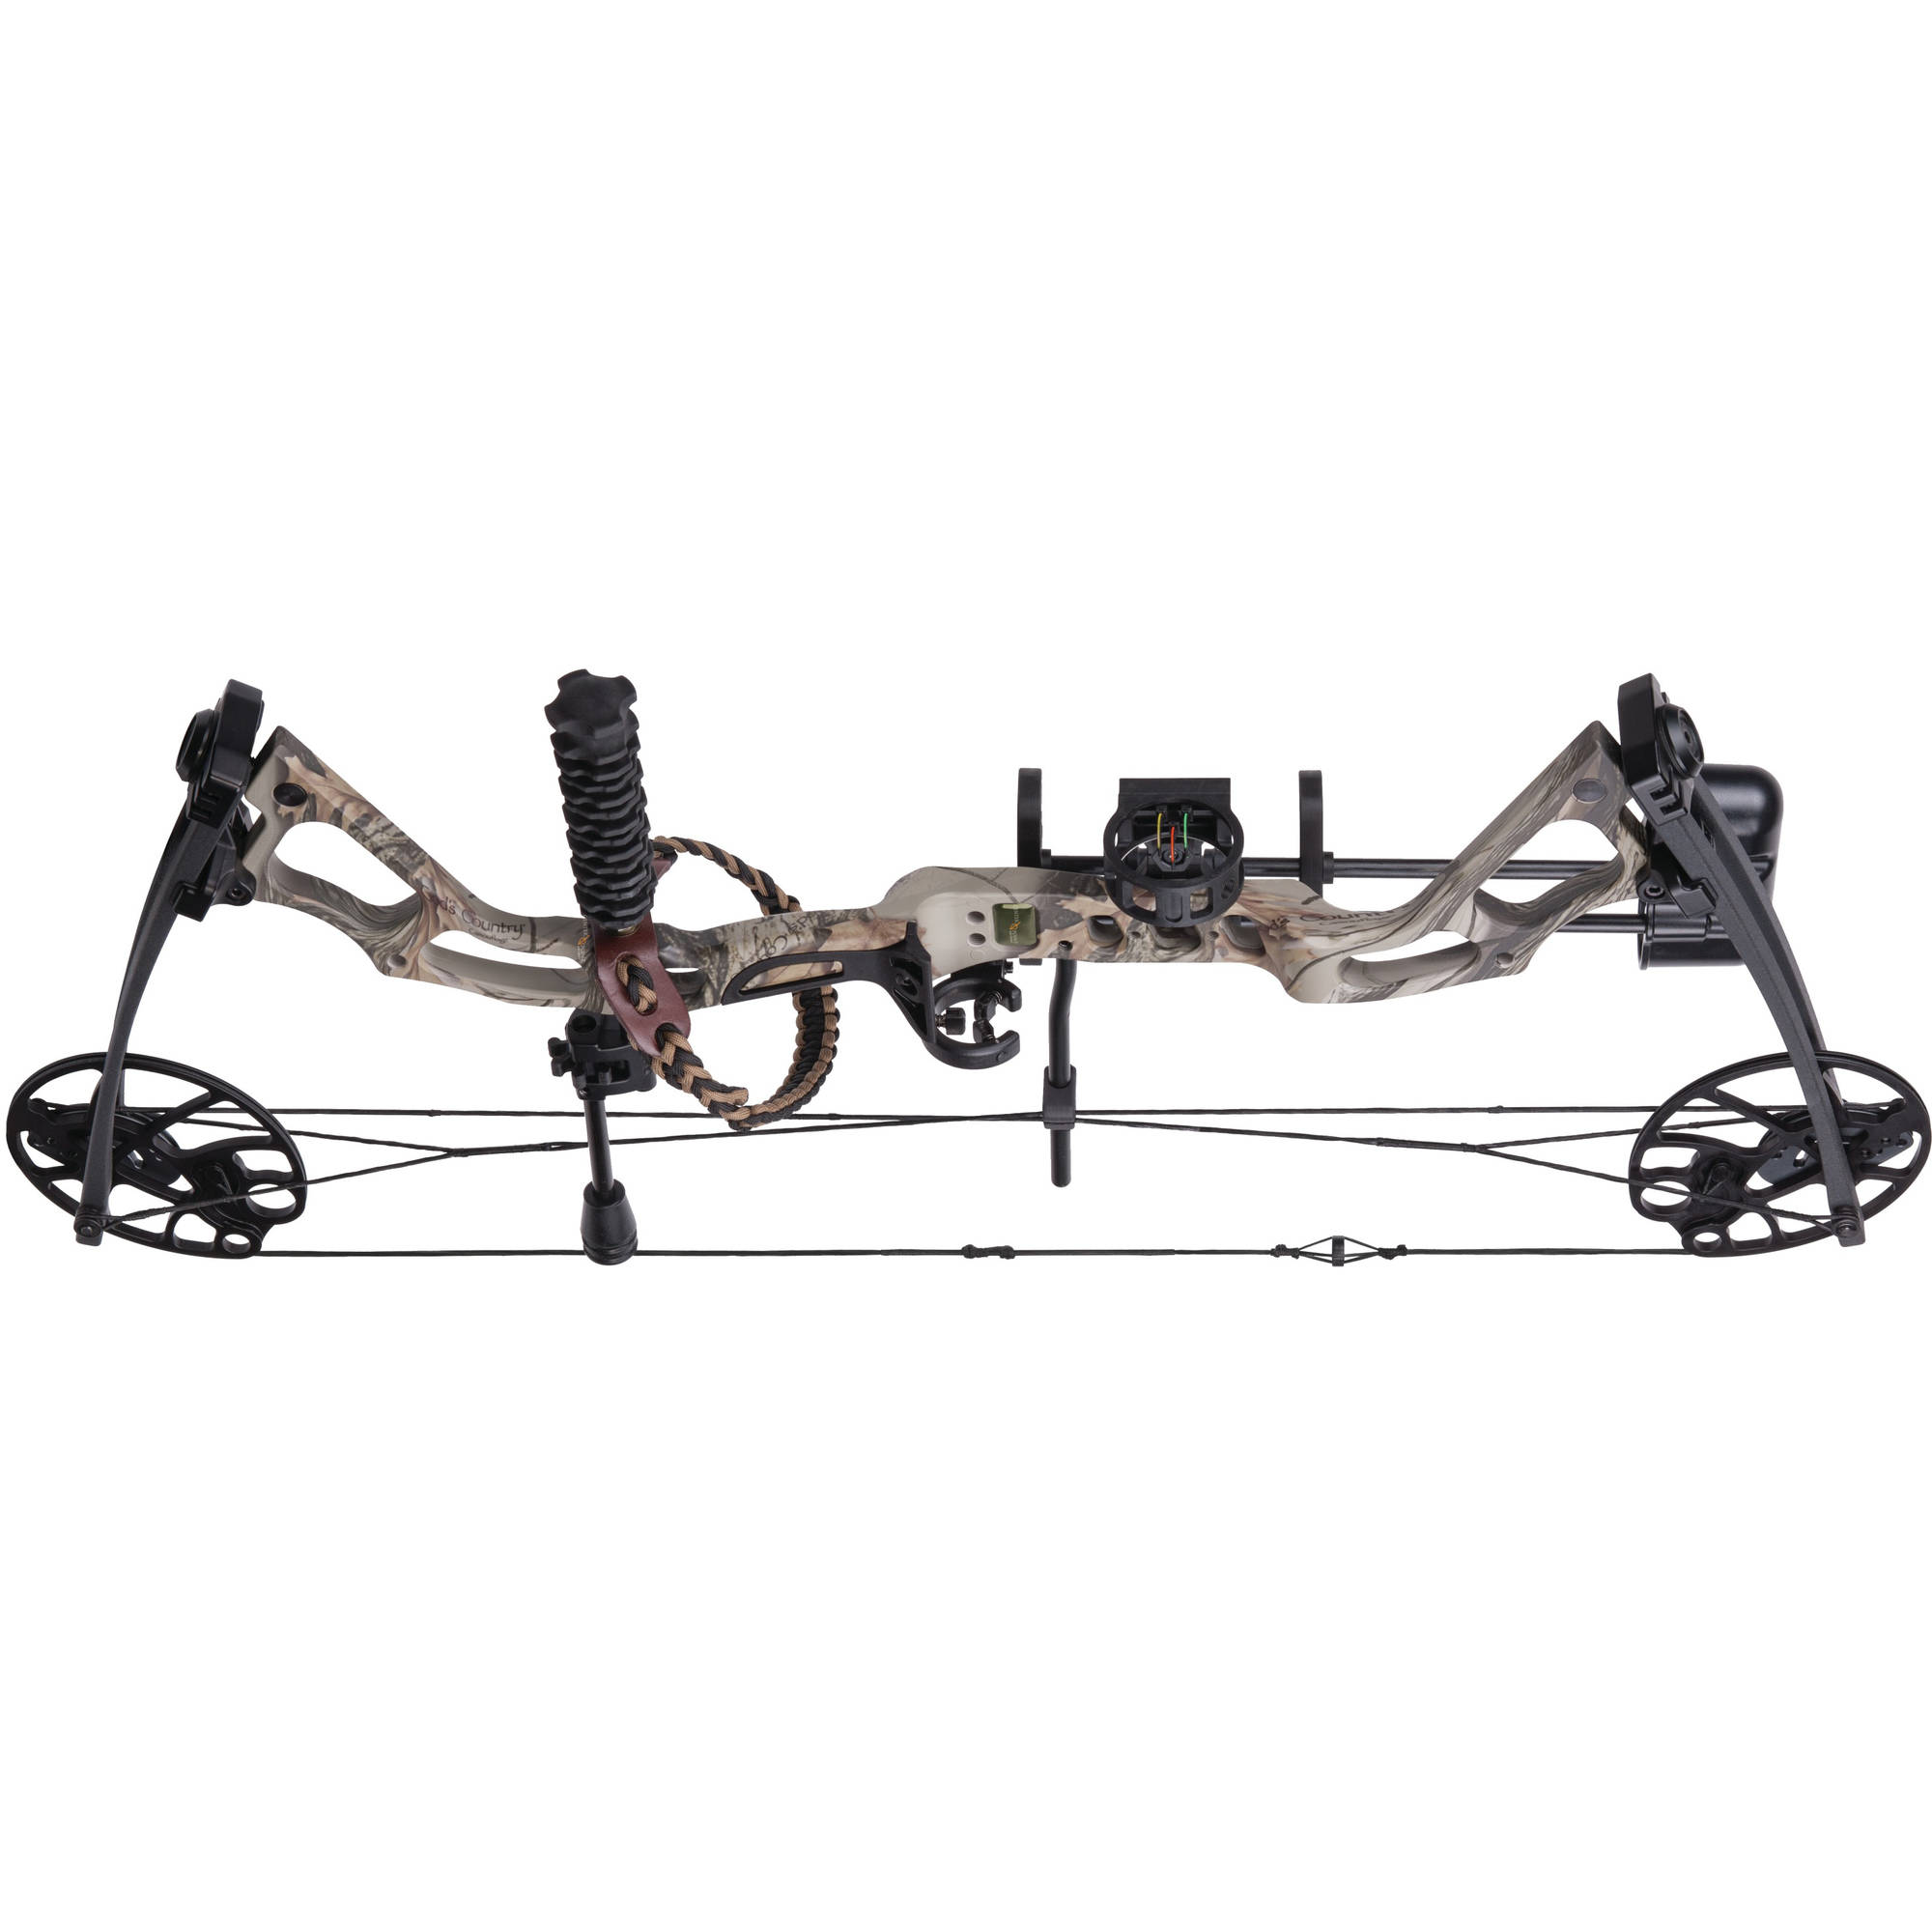 CenterPoint EOS Hunter AVCEH70KT Vertical Compound Bow